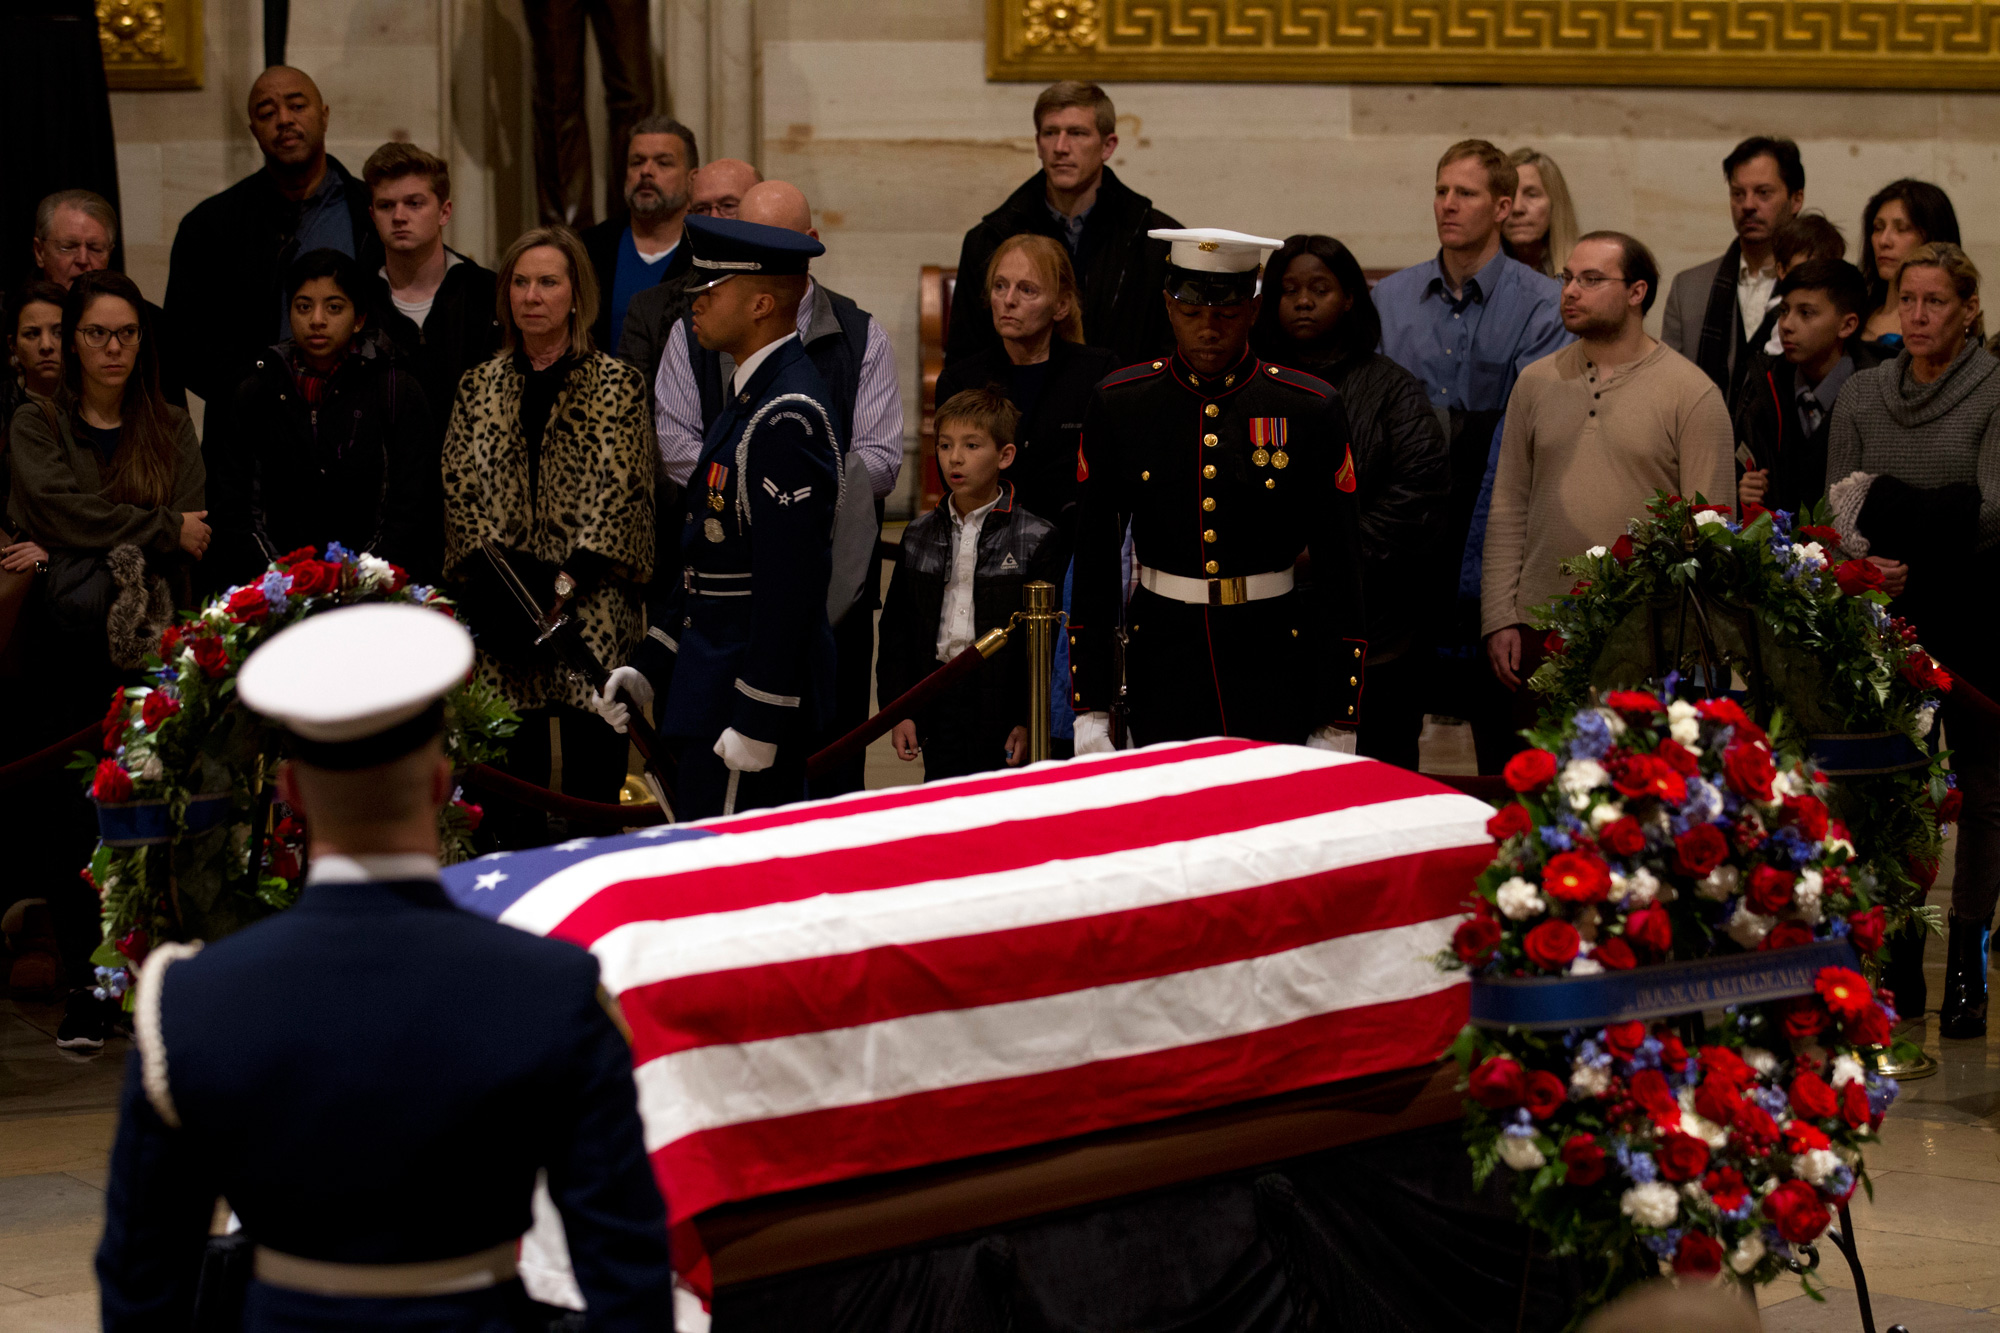 Visitors pay their respects at the flag-draped casket of former President George H.W. Bush, as he lies in state in the Capitol Rotunda in Washington on Wednesday.